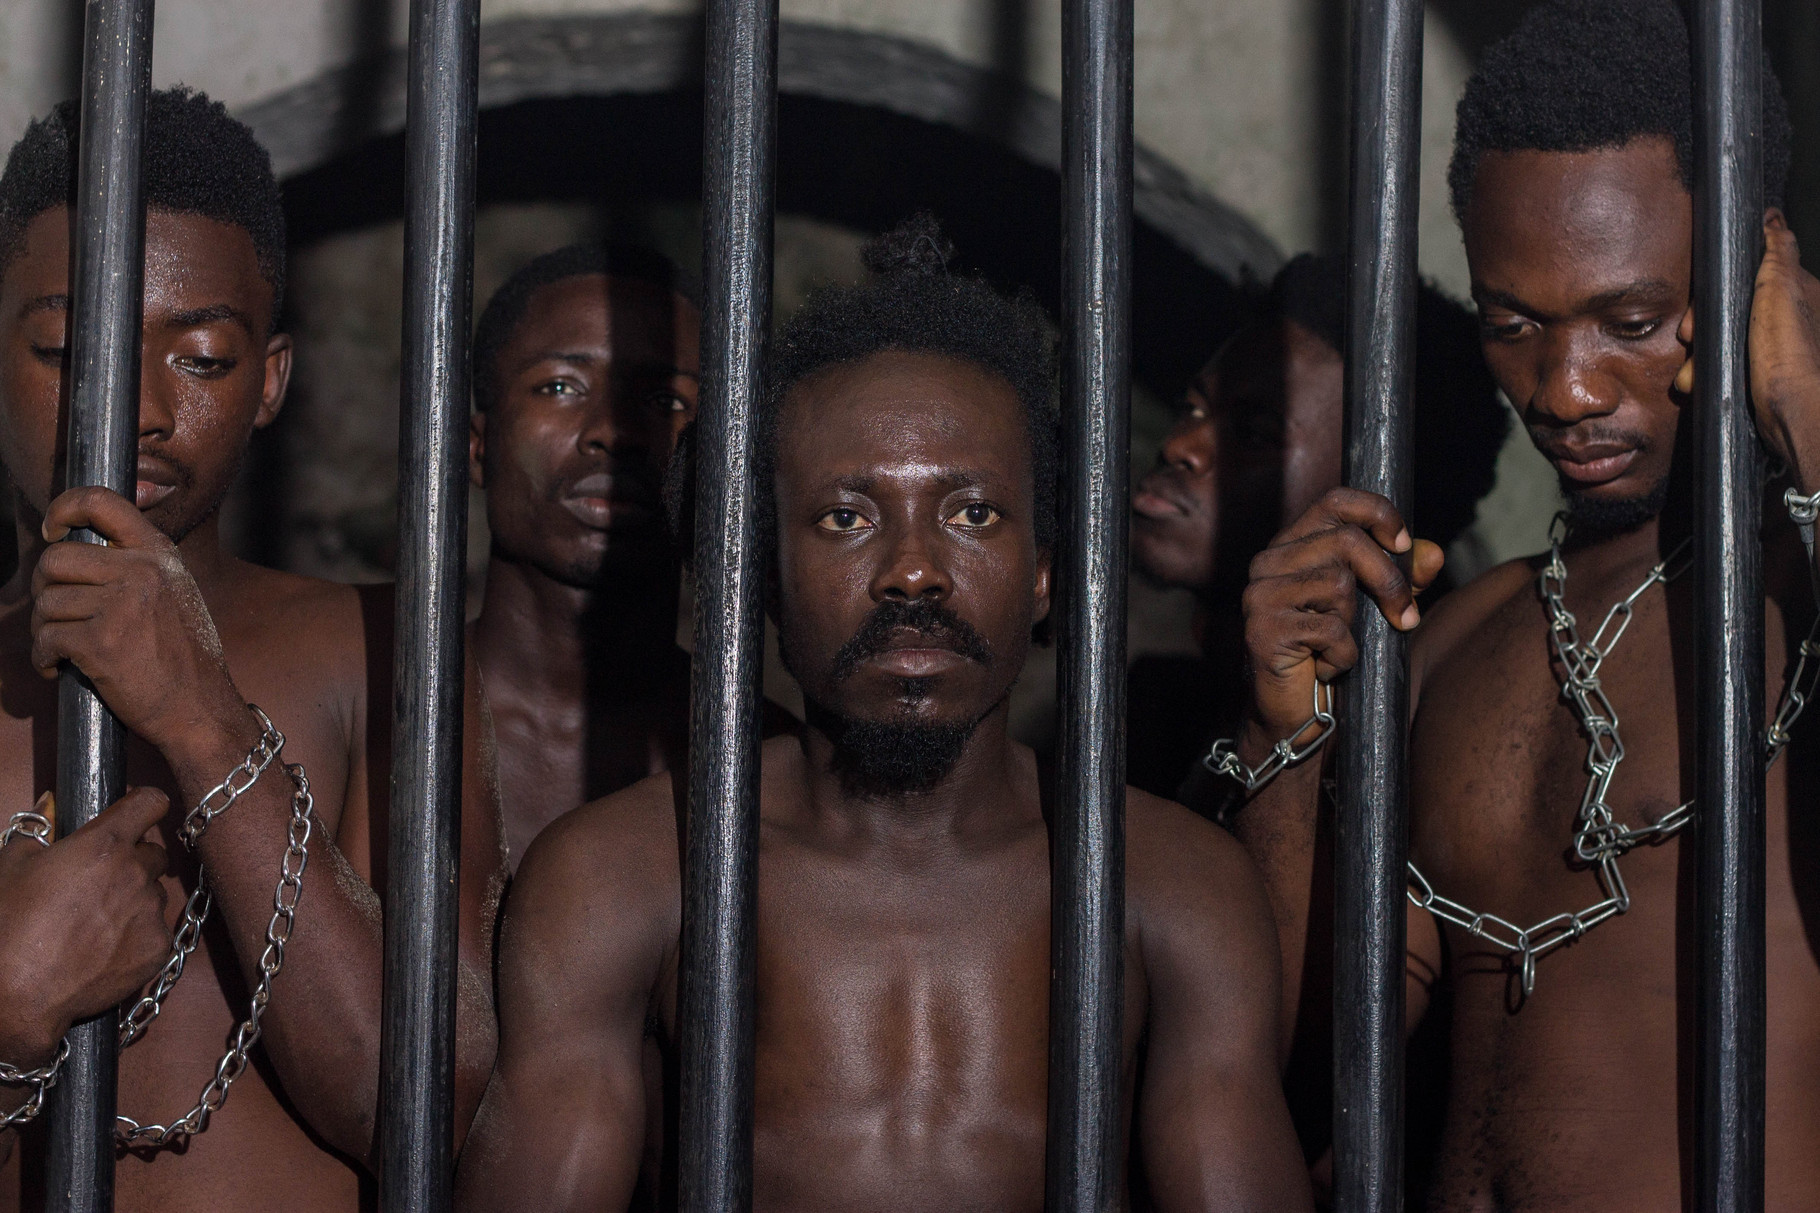 The Return of the Slaves, 2015, Elmina Castle, Ghana